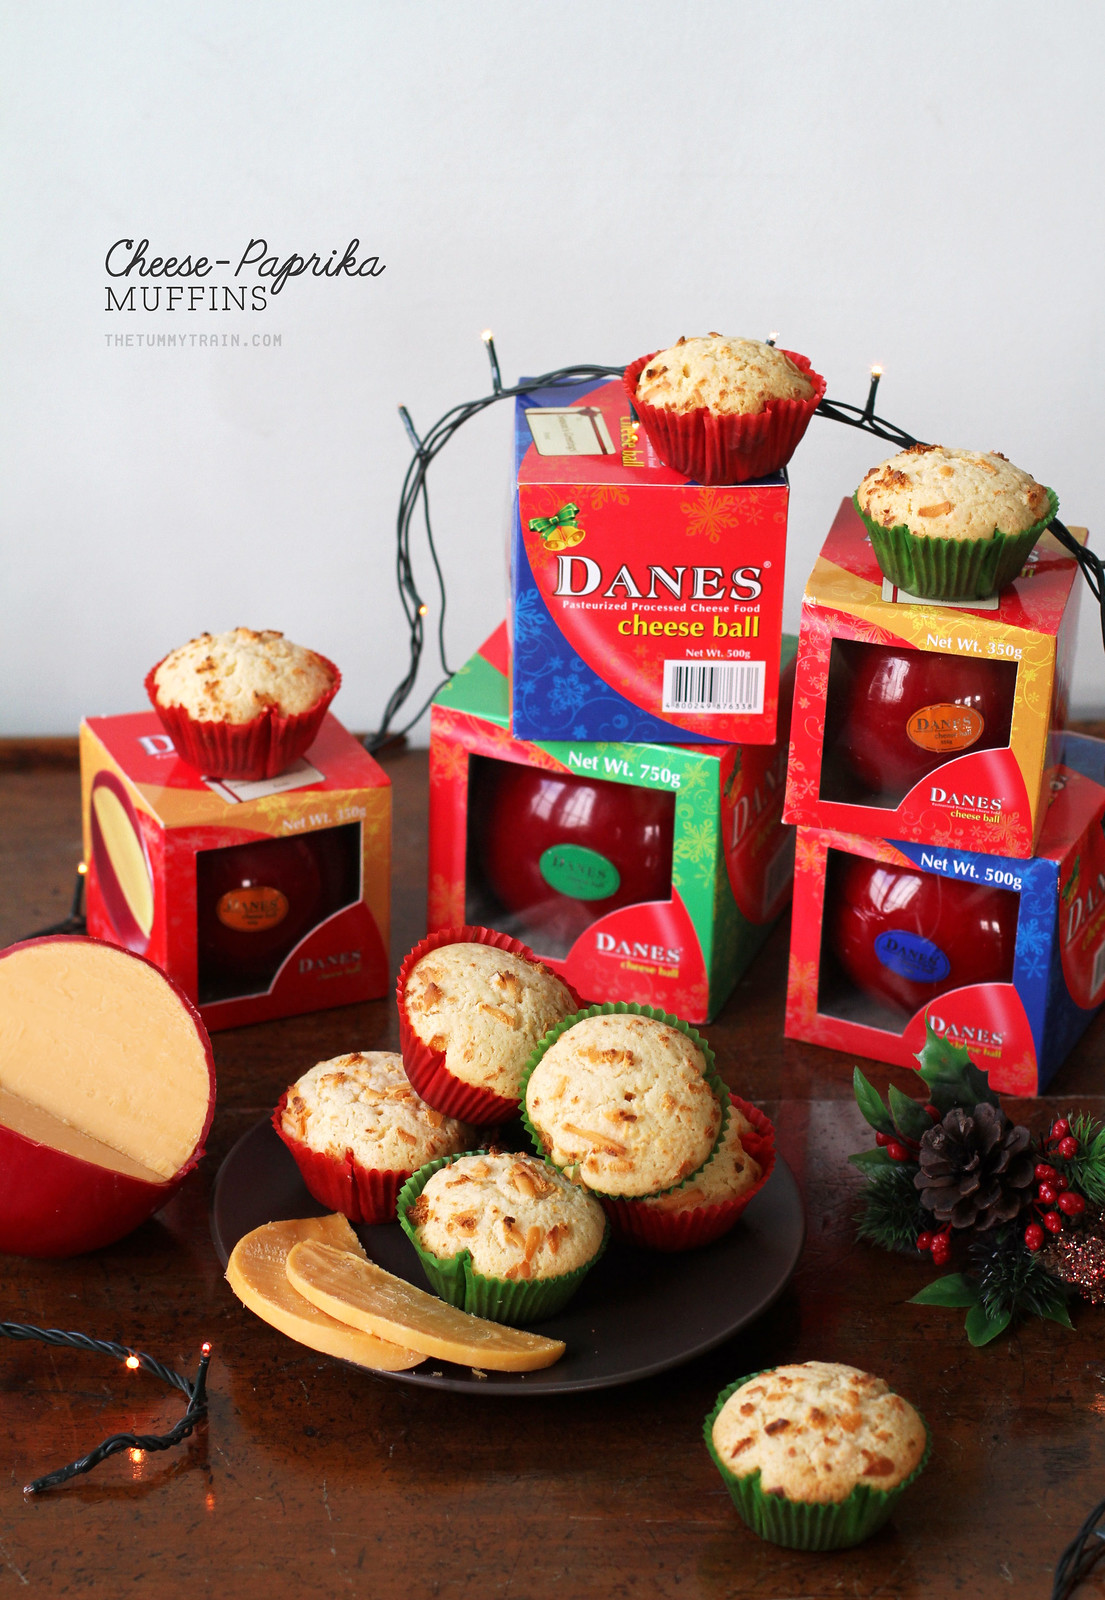 22880211737 b6ffe0c4a2 h - Have a sweet and savory Christmas with Danes Cheese Ball